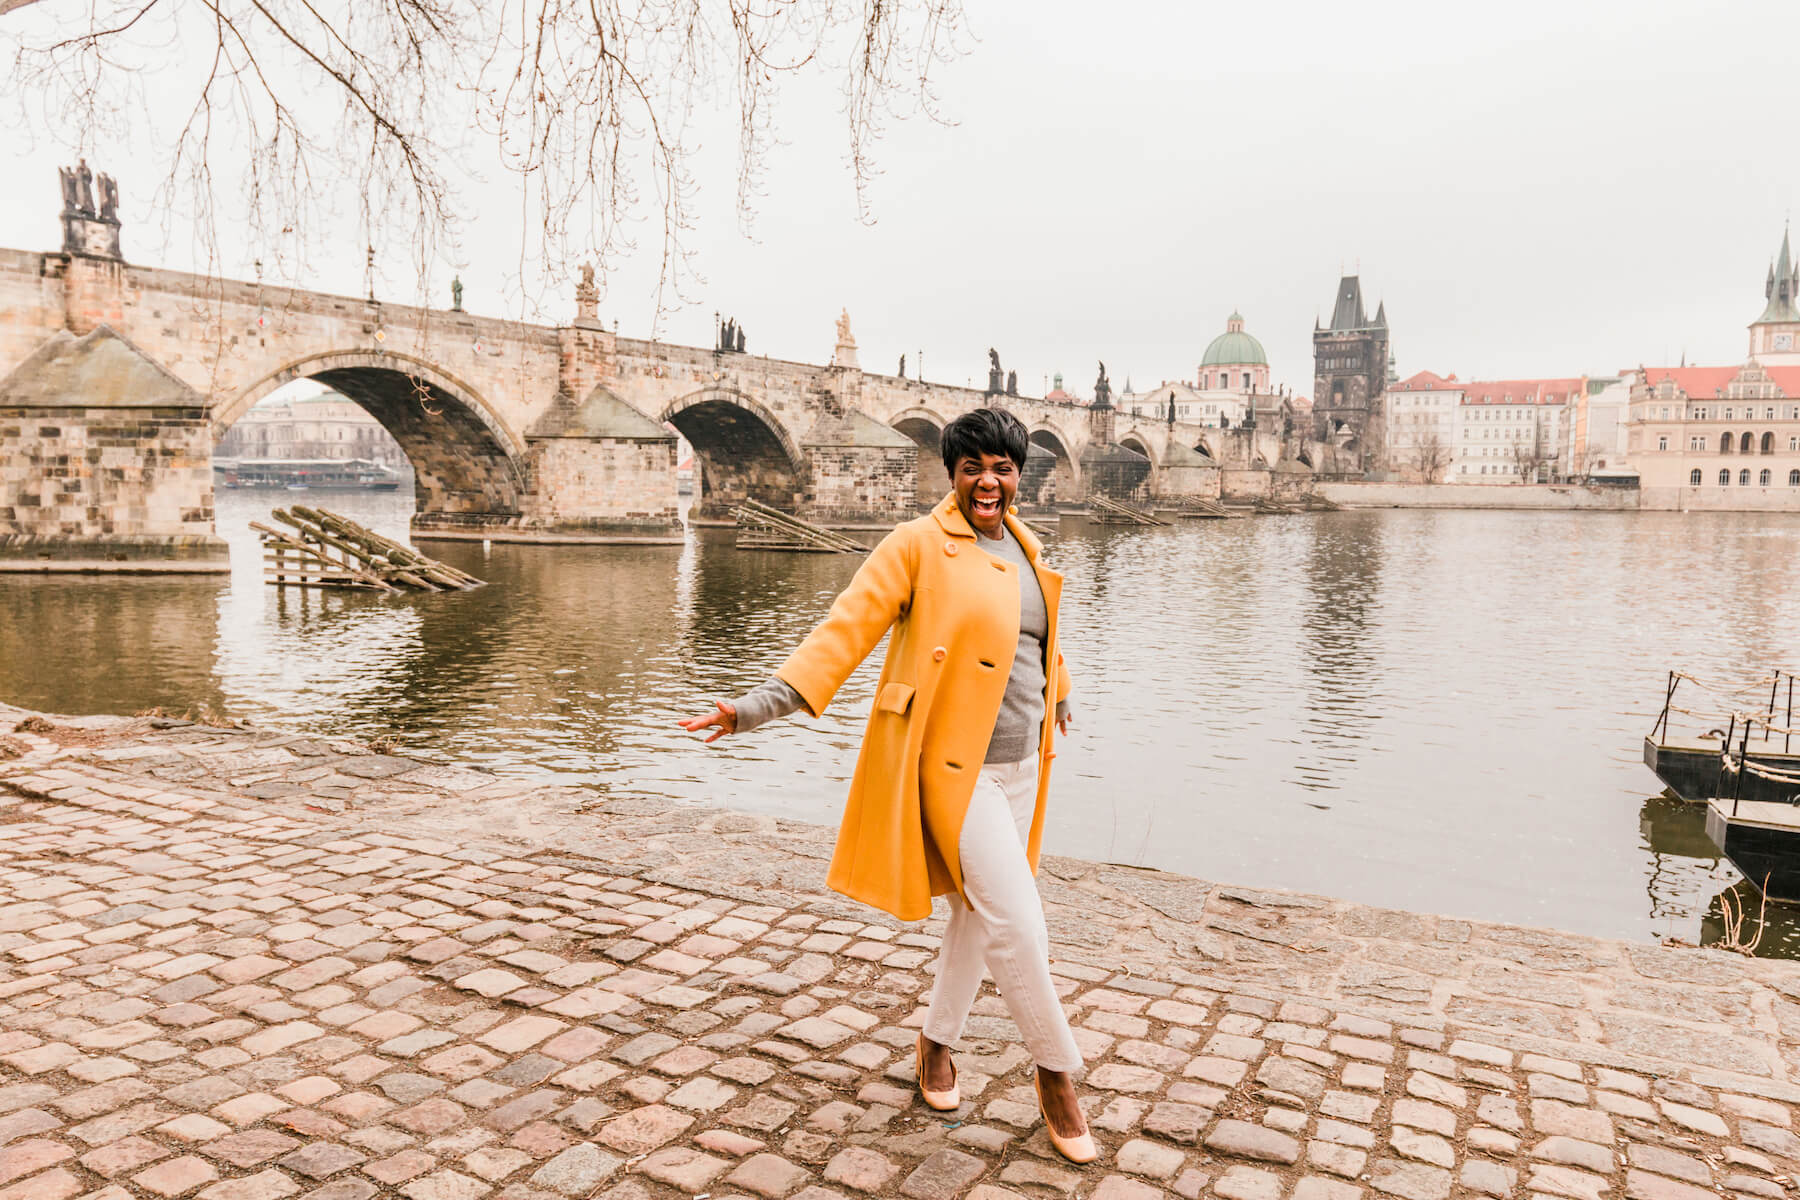 A woman smiling and dancing in a bright yellow jacket on the bank by the river in Prague, Czech Republic.